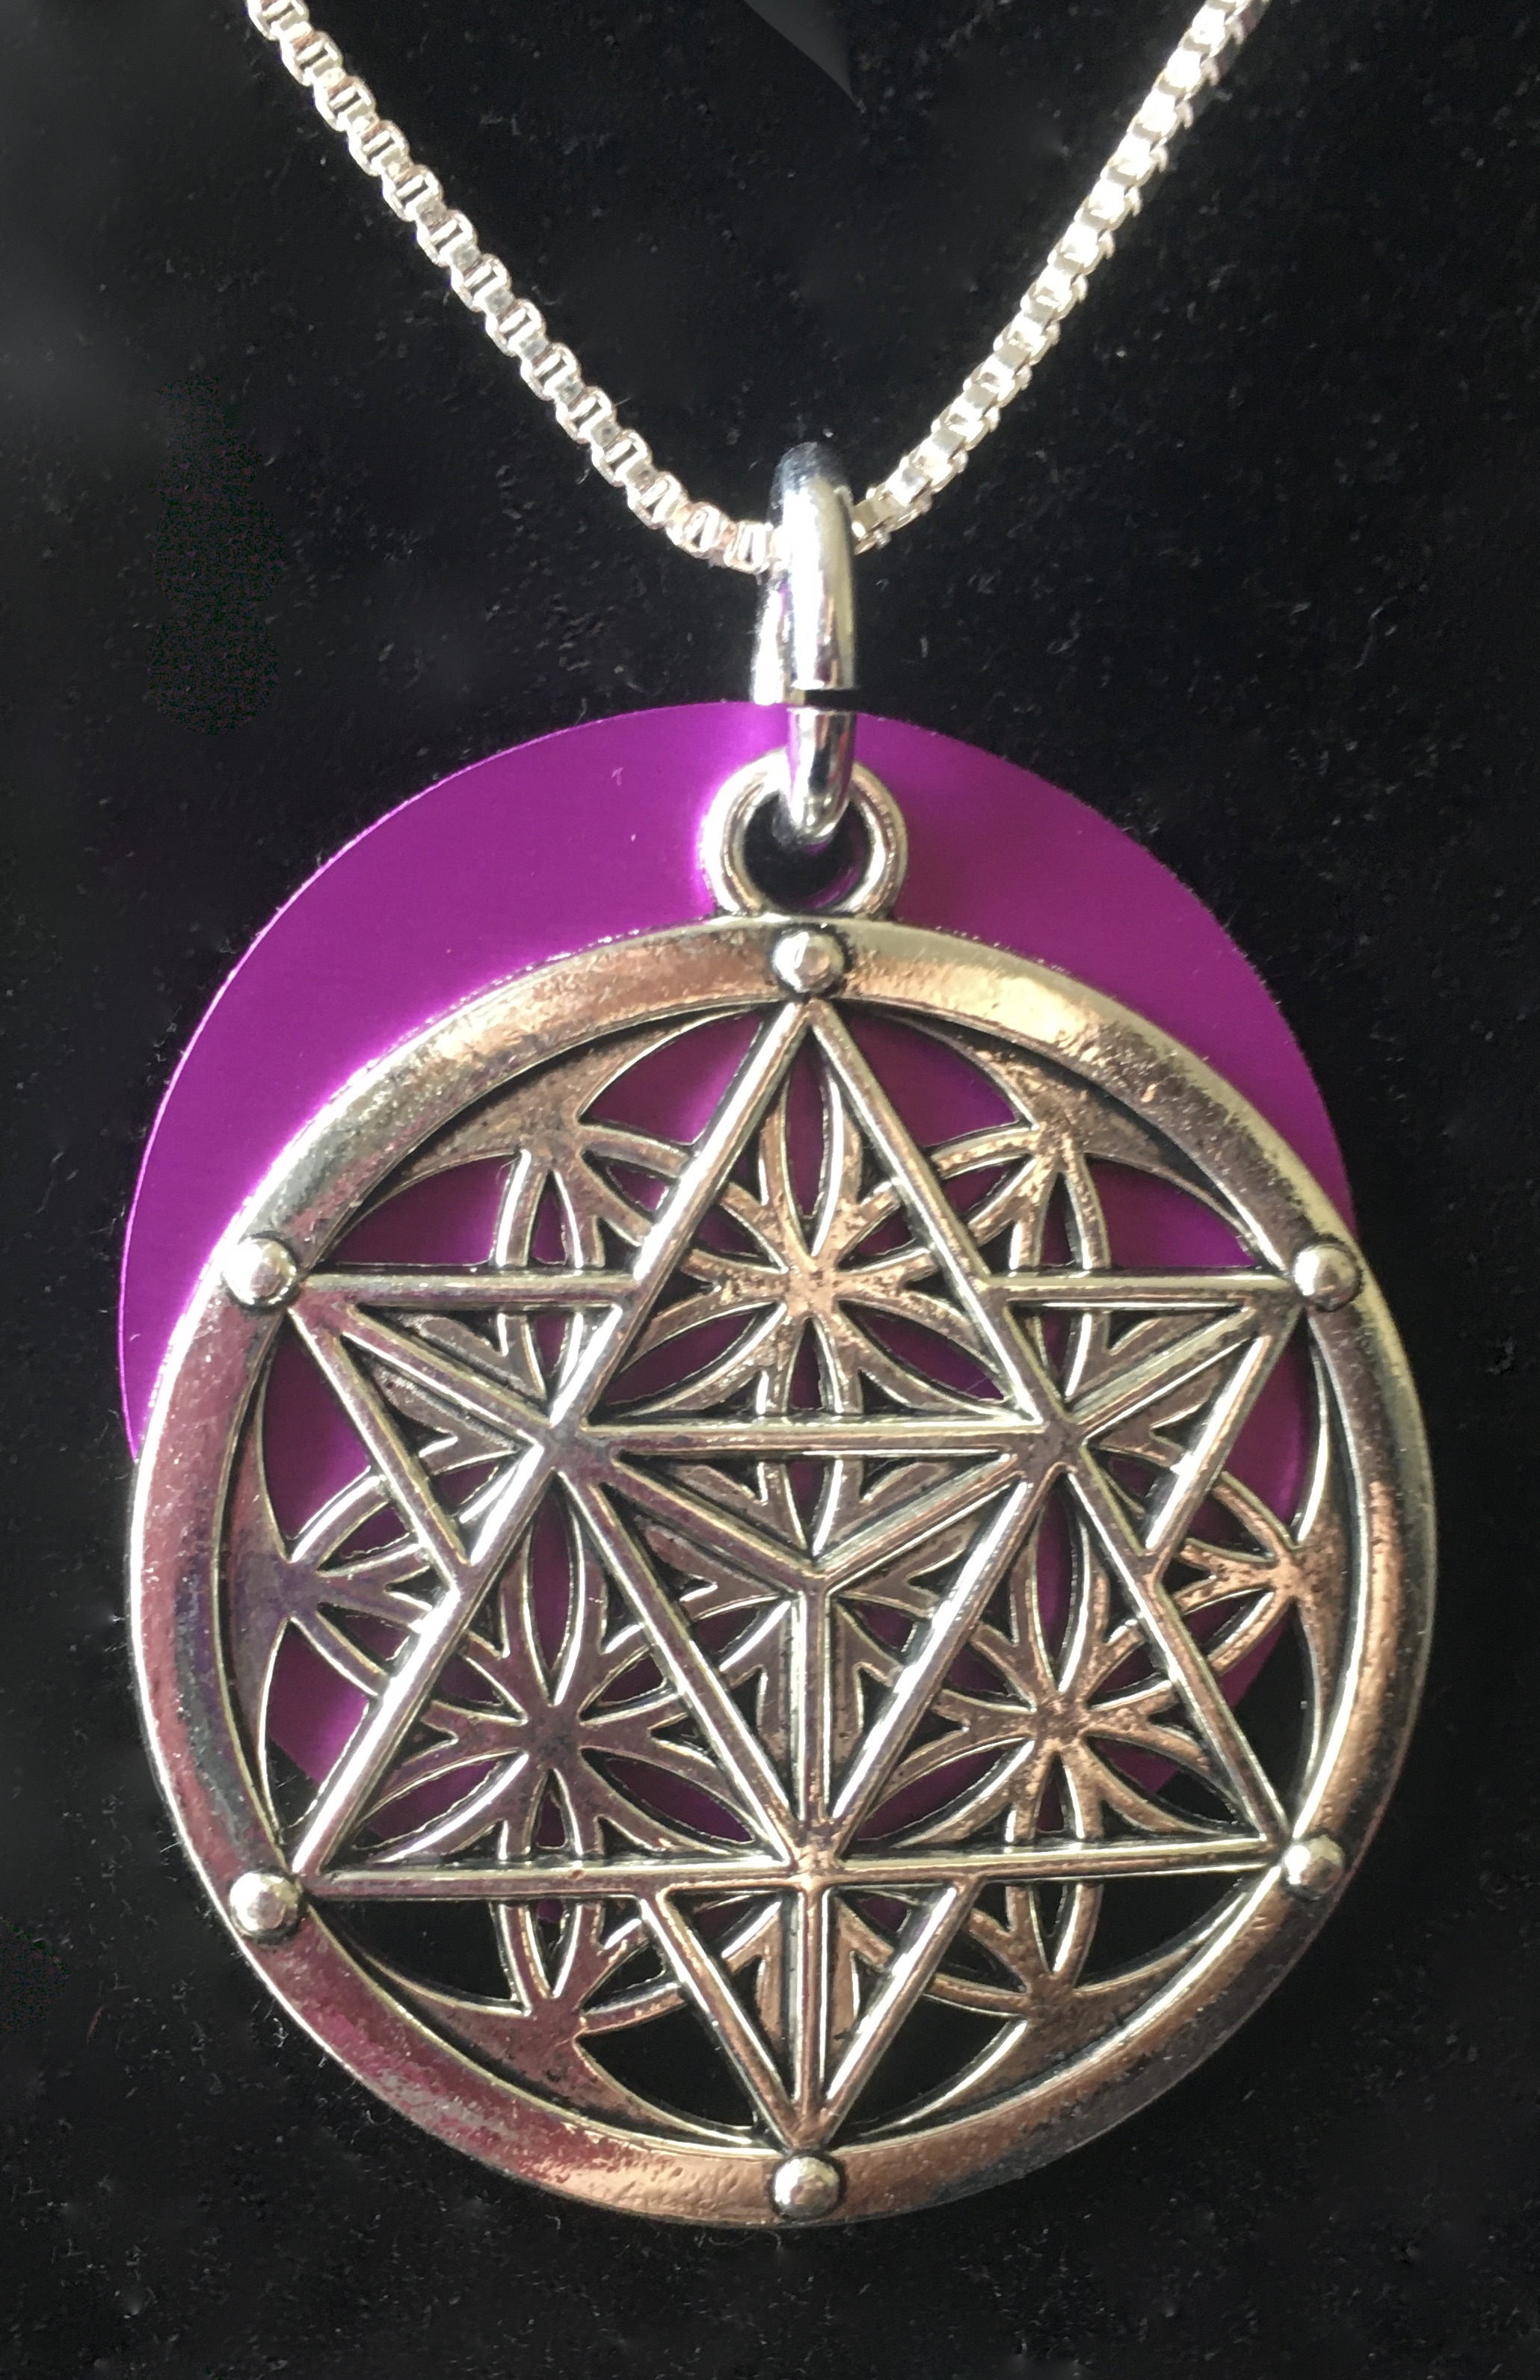 Mystical Flower of Life Necklace w/Large Disk